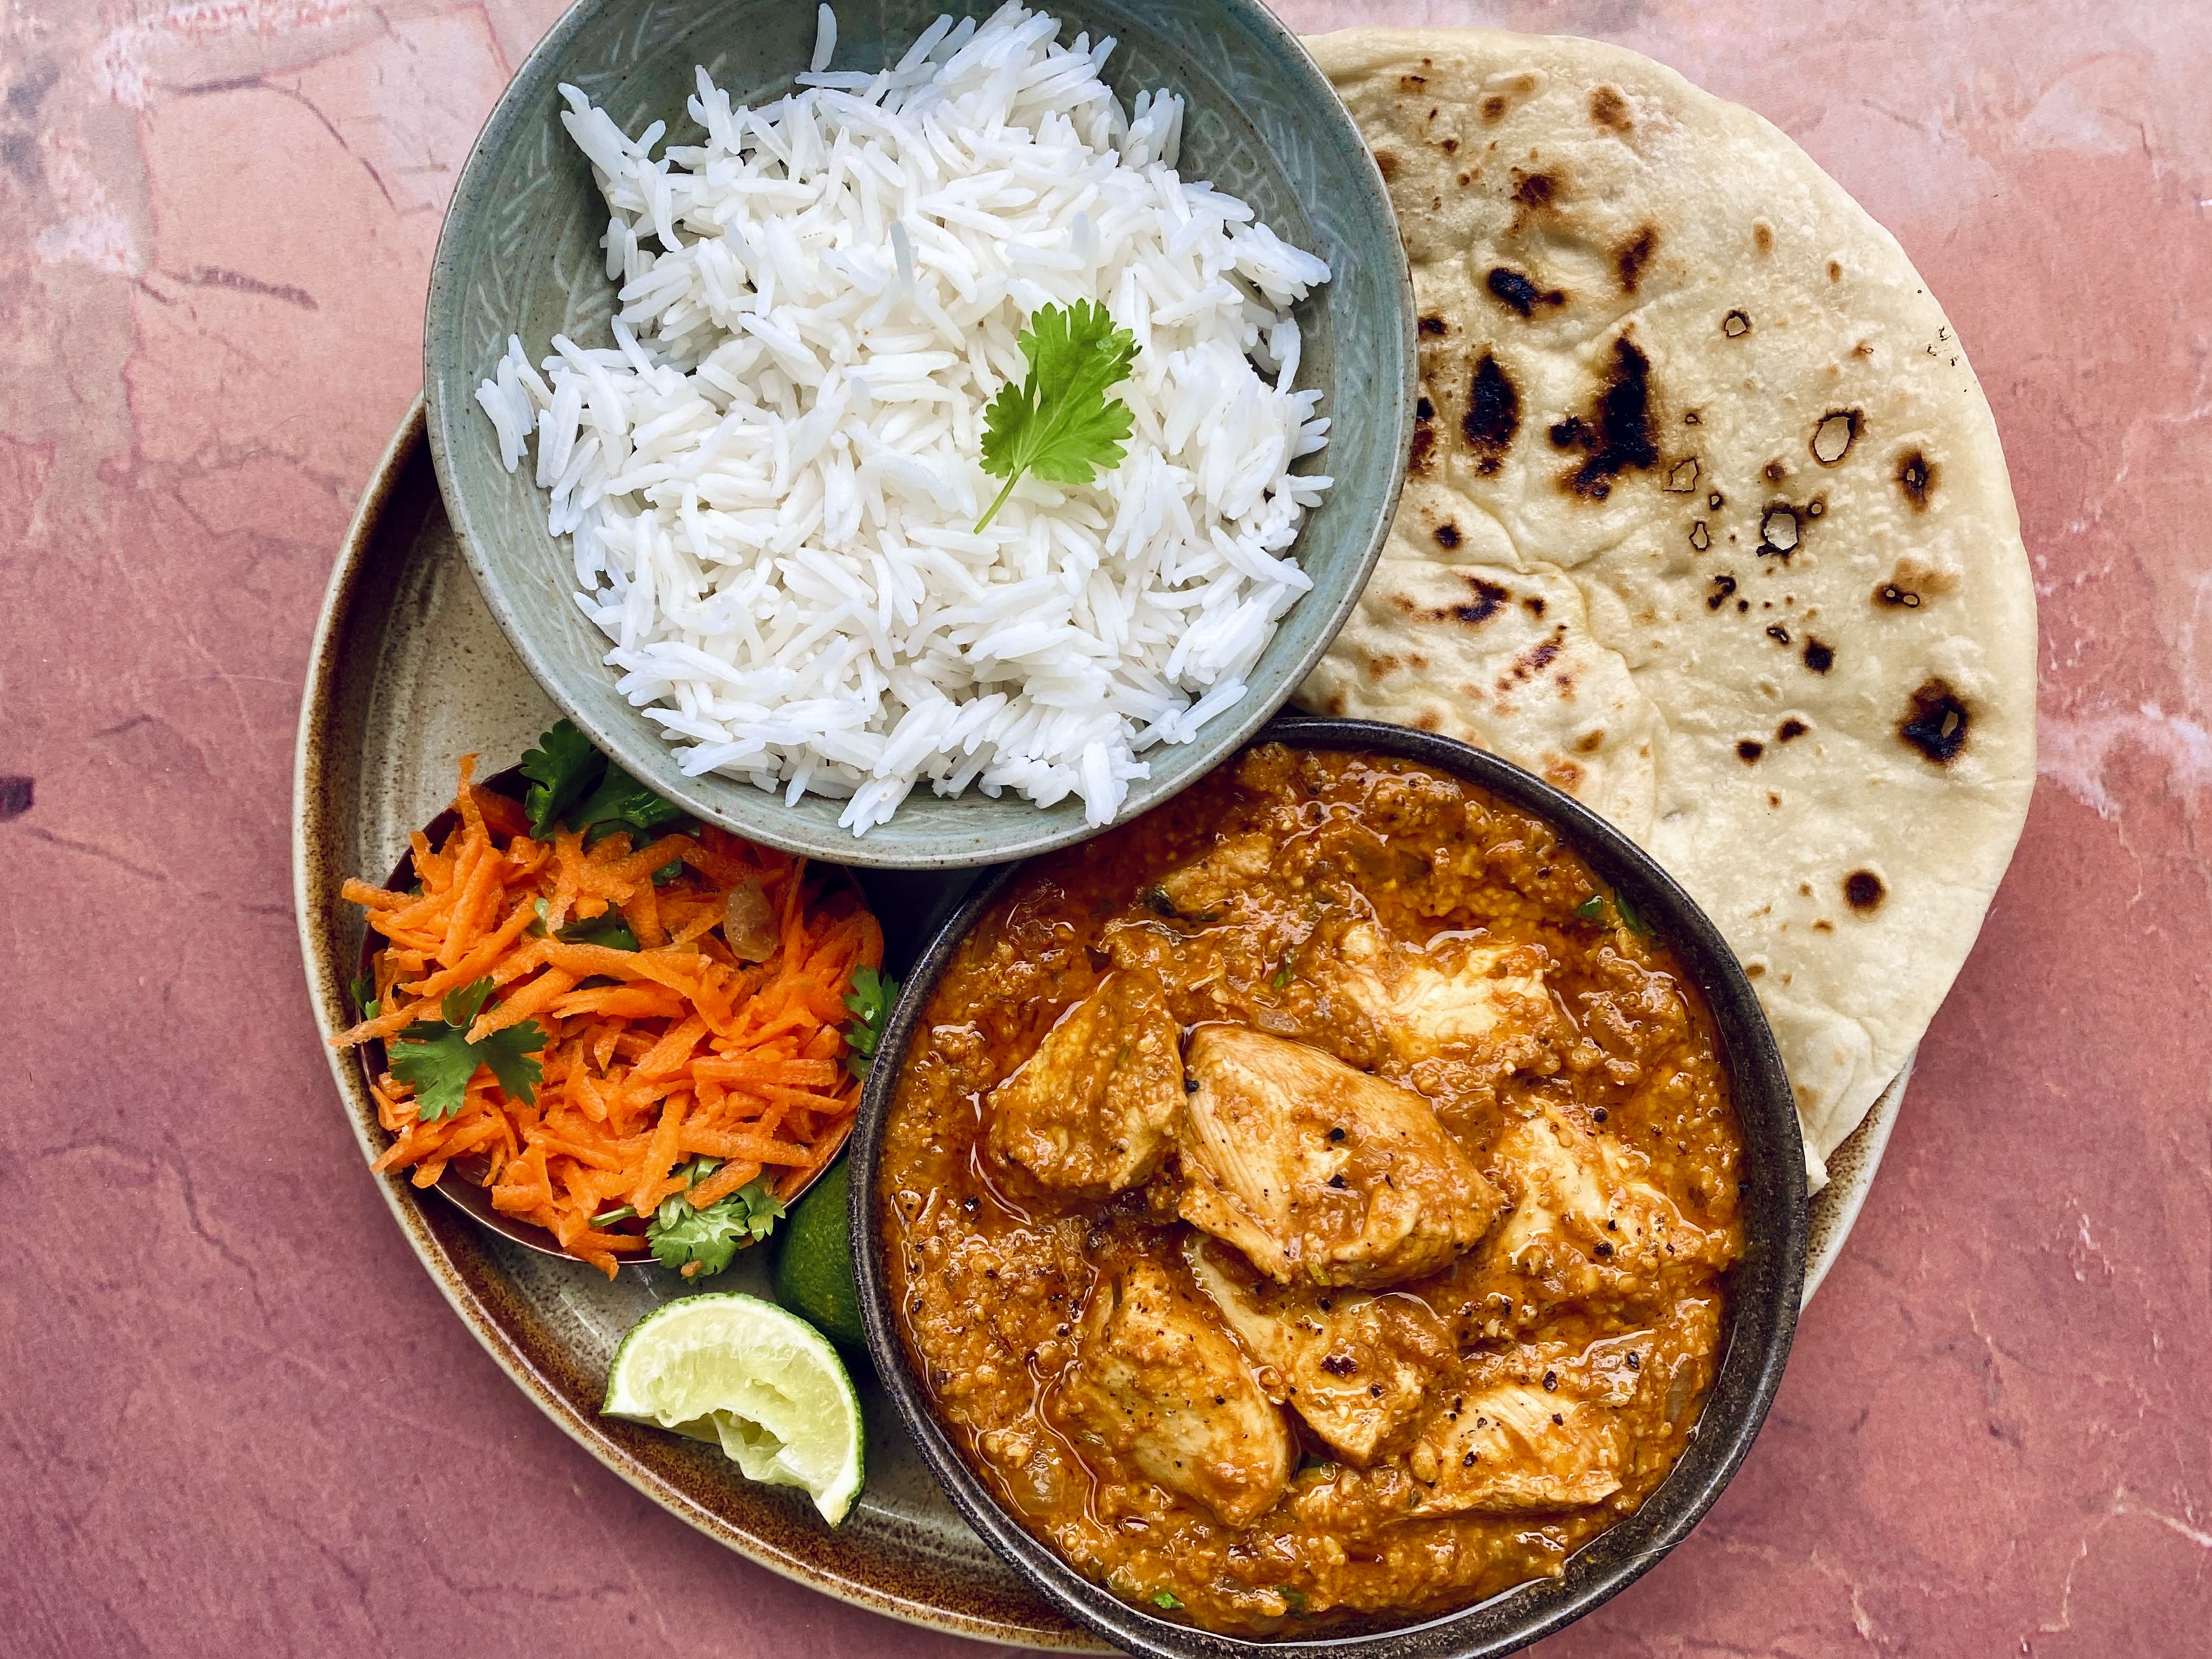 Mild Chicken Cashew Curry with Naan and Carrot Salad